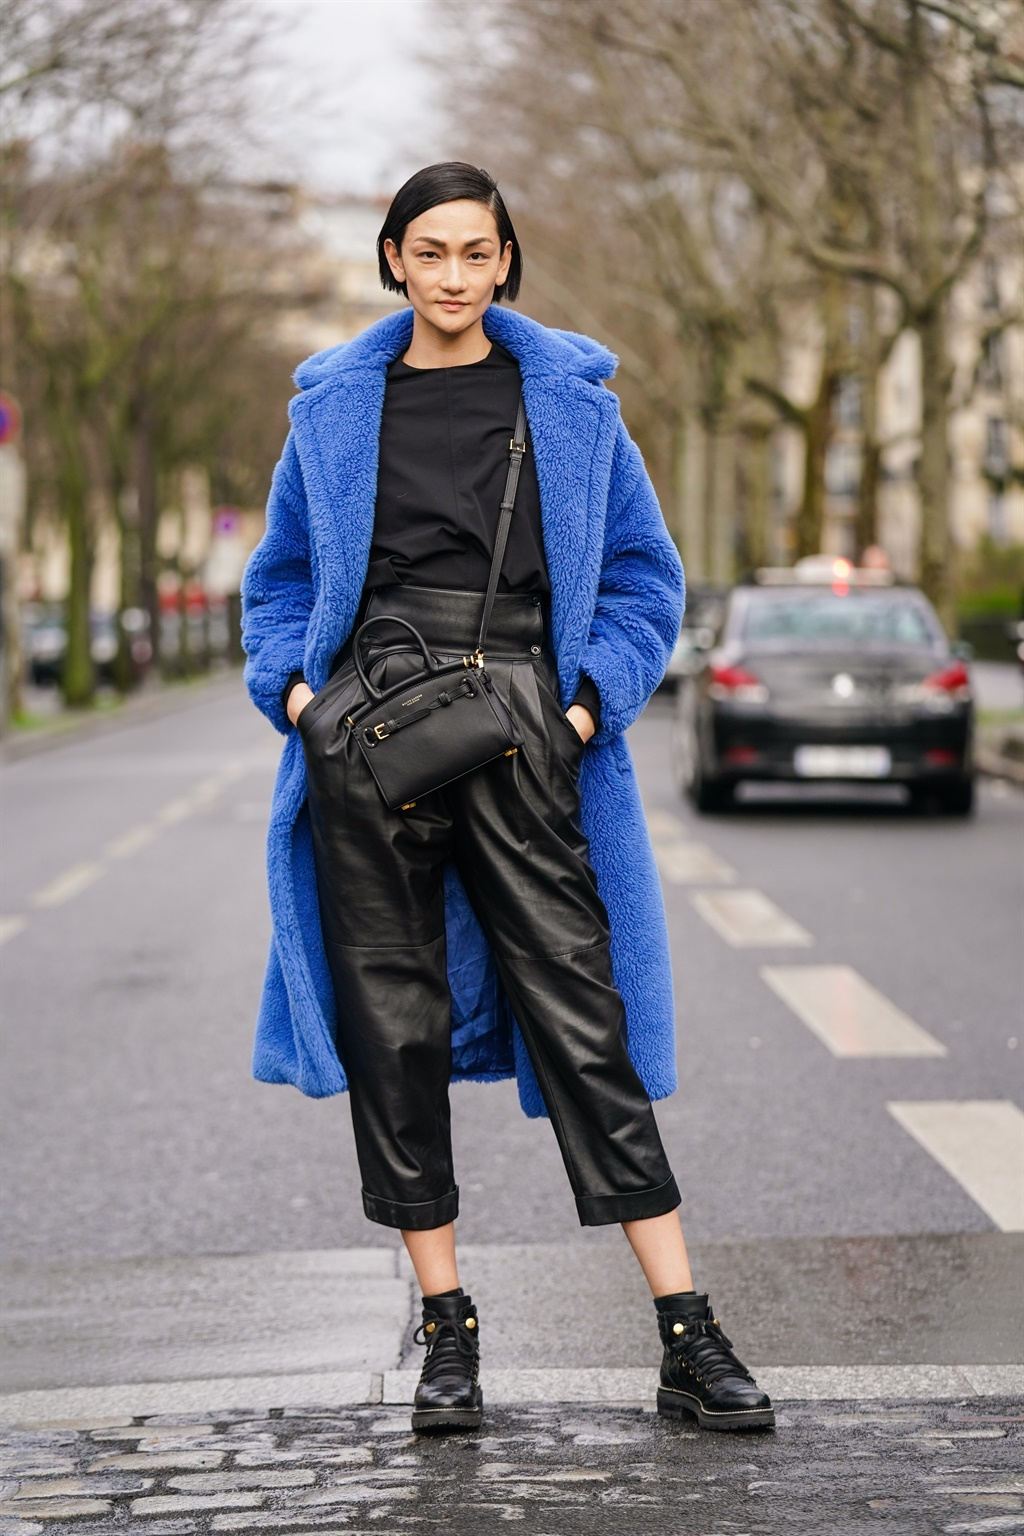 PARIS, FRANCE - MARCH 02: Ai Tominaga wears a blue